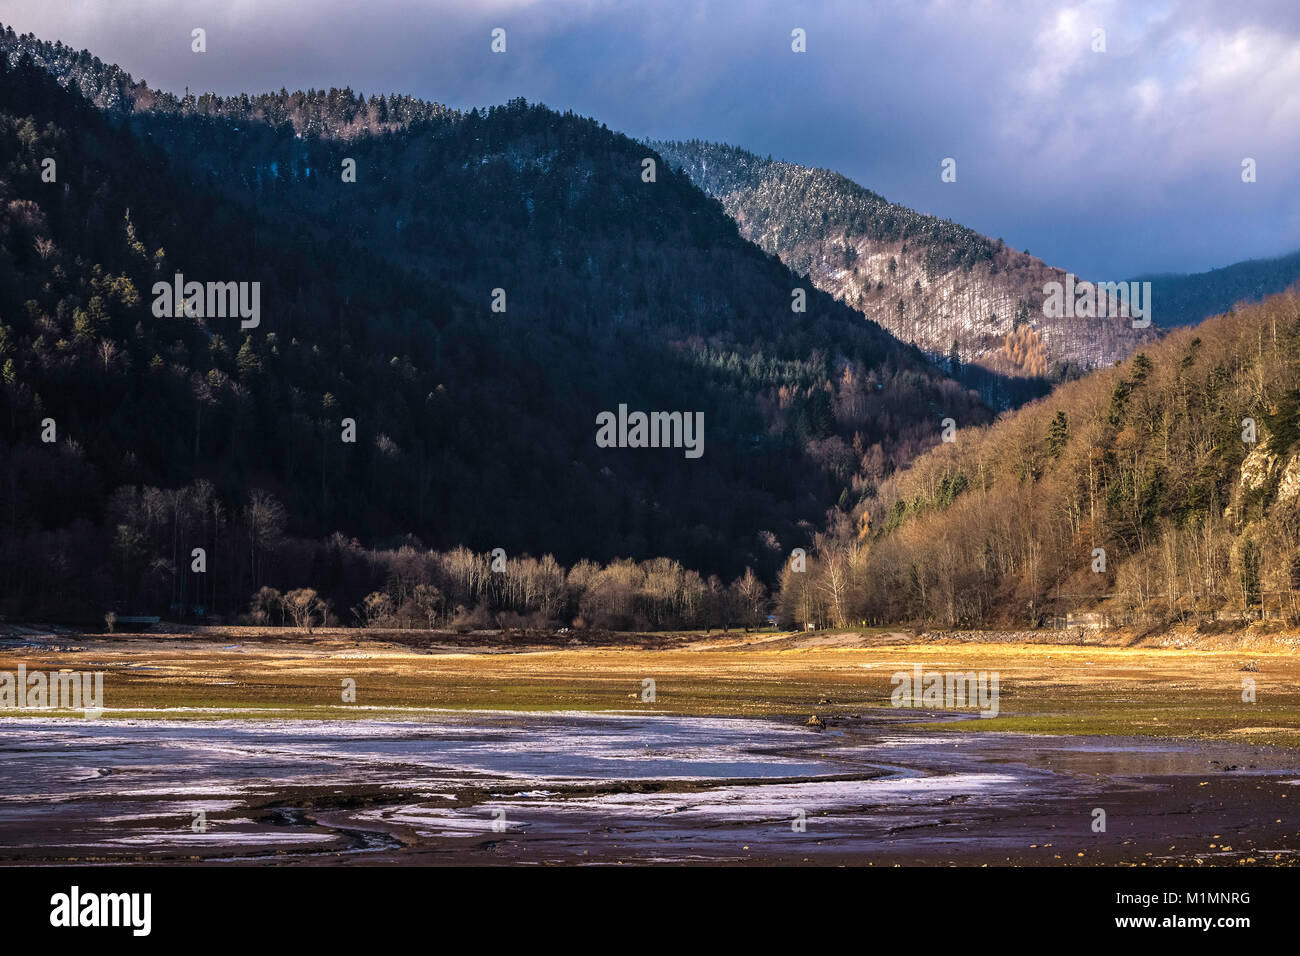 Landscape of the Kruth-Wildenstein Lake and the mountains surrounding it in the Vosges on a sunny and cloudy day - Stock Image